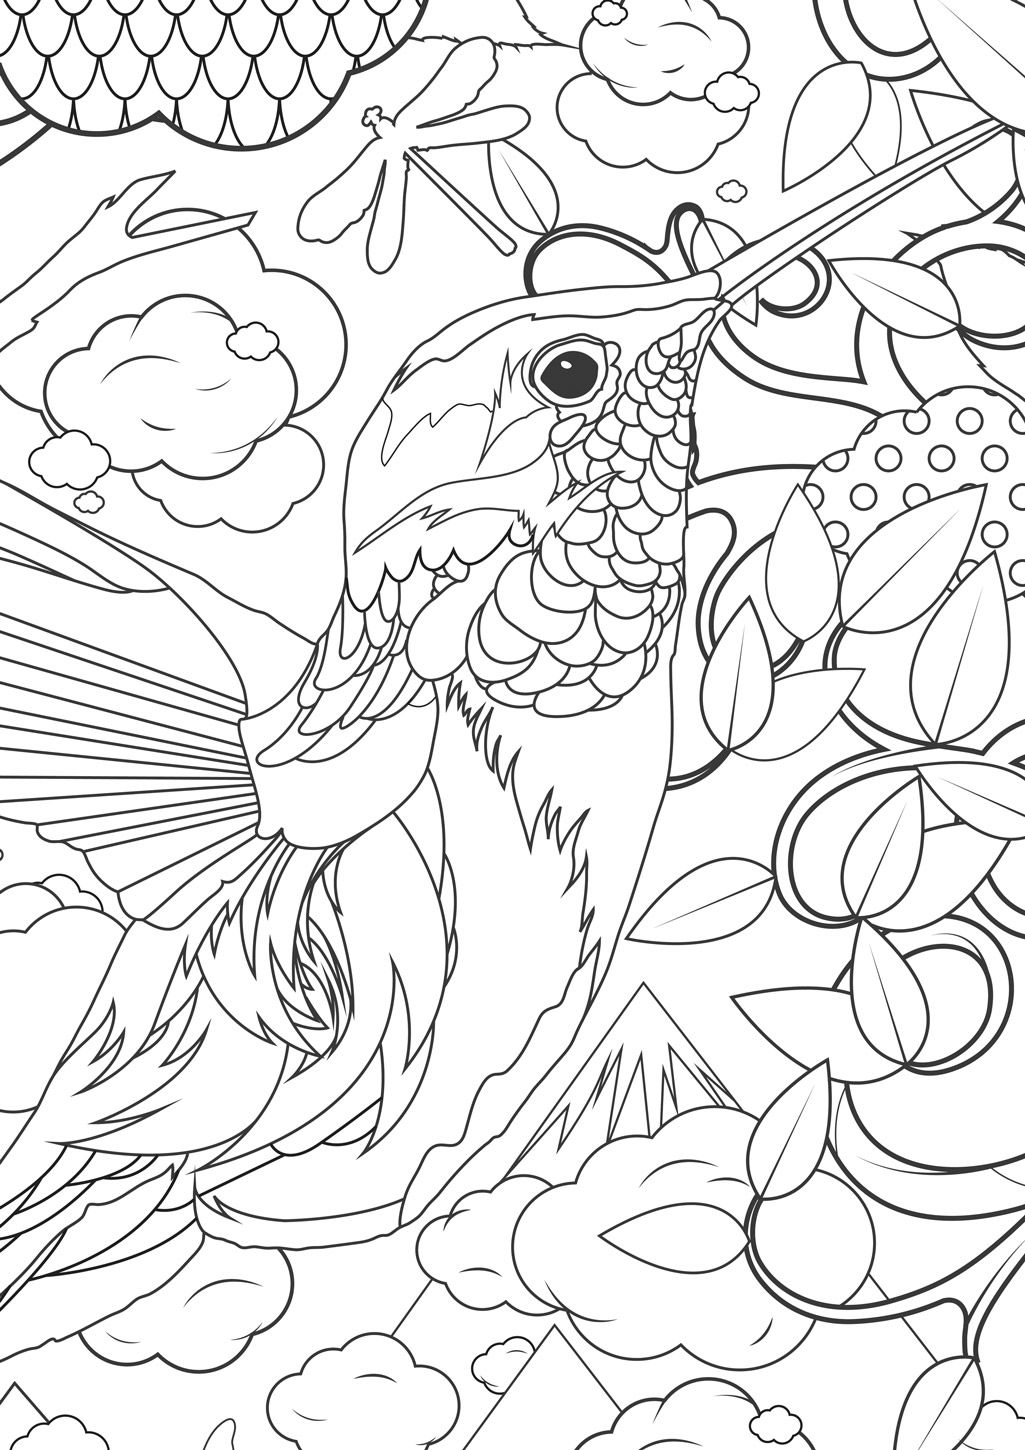 Supersized Colouring Picture From Kek Amsterdam